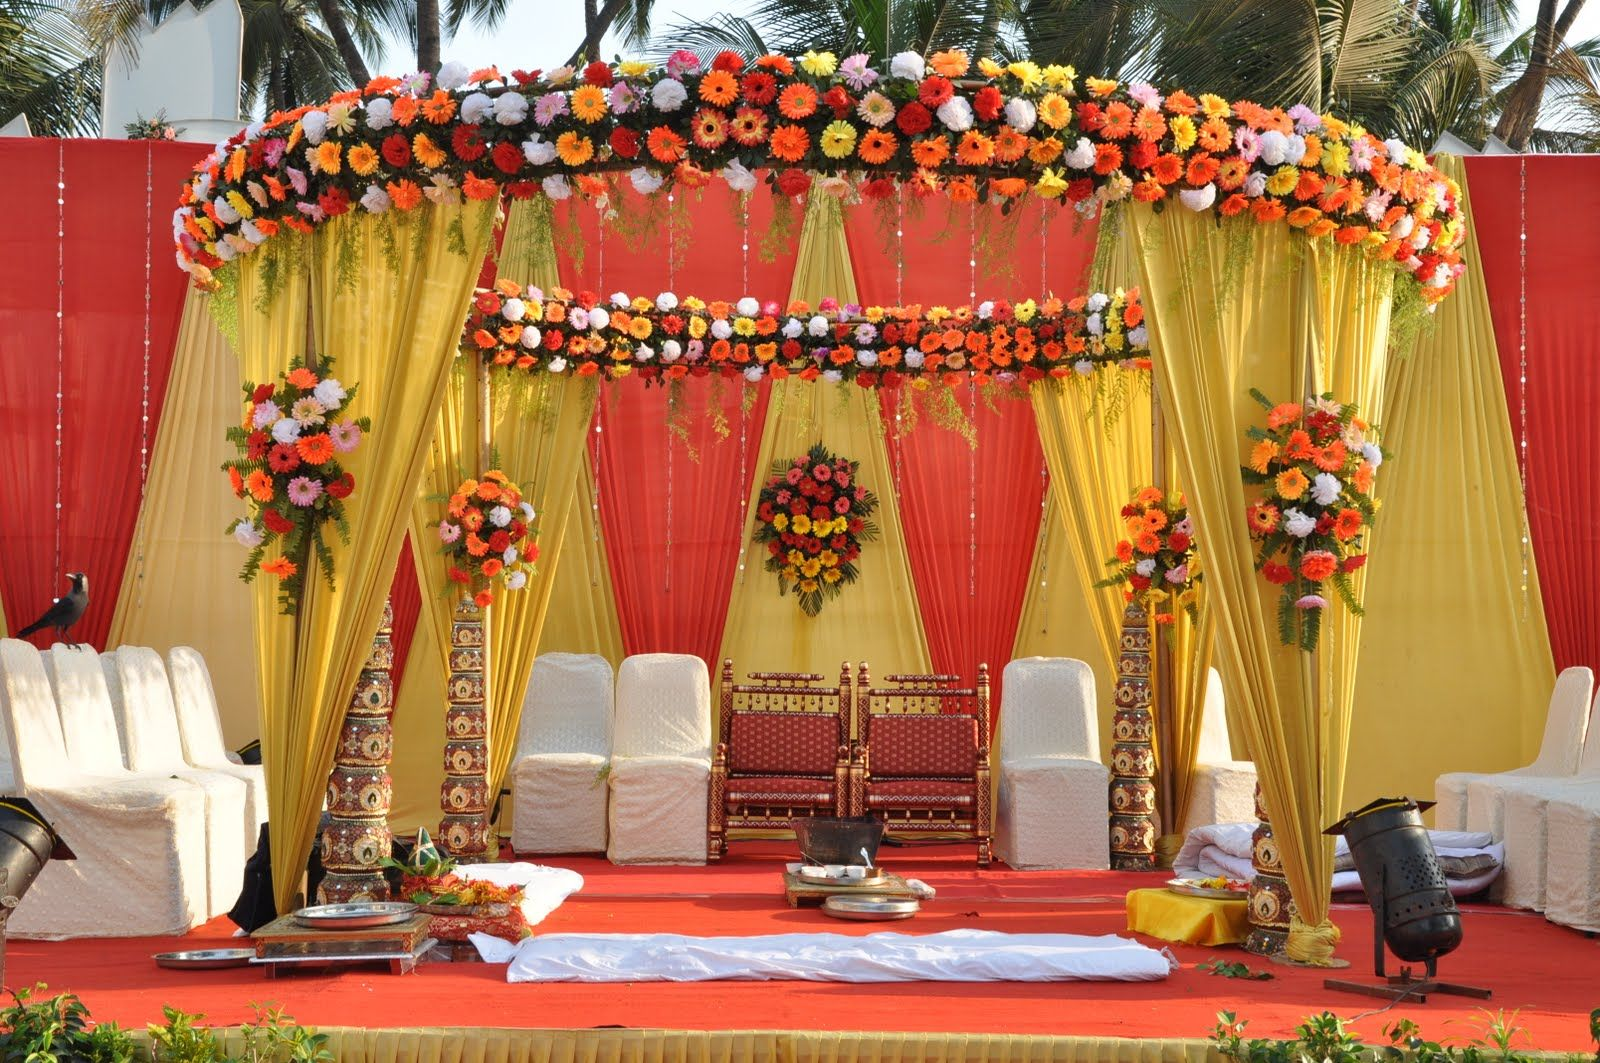 indian wedding flowers decorations google search - Indian Wedding Decorations